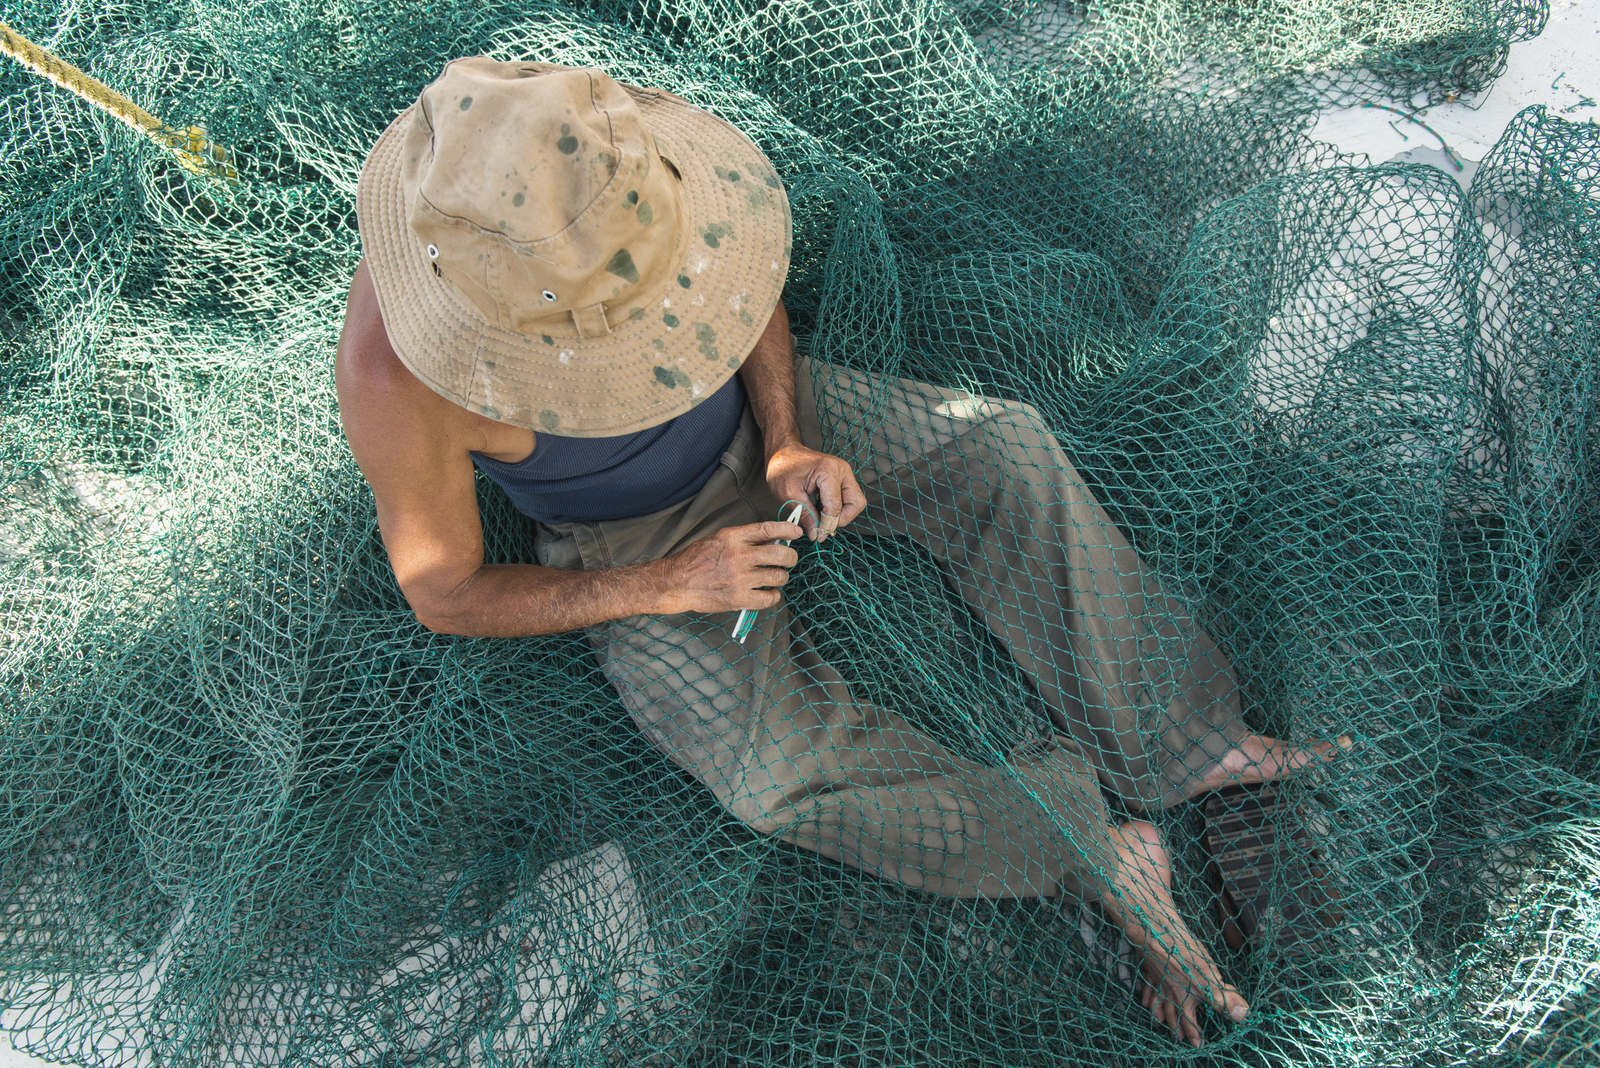 Vietnamese fisherman Dung Nguyen mends a shrimp net aboard a shrimp boat at the docks in Bayou La Batre, Alabama. The Nature Conservancy's Gulf of Mexico Program is a partnership among our five Gulf State Chapters to accomplish conservation across the entire Gulf ecosystem. The Gulf Program employs conservation professionals in Florida, Alabama, Mississippi, Louisiana, and Texas to restore and protect natural systems and natural areas across political boundaries. Photo credit: © Carlton Ward Jr.